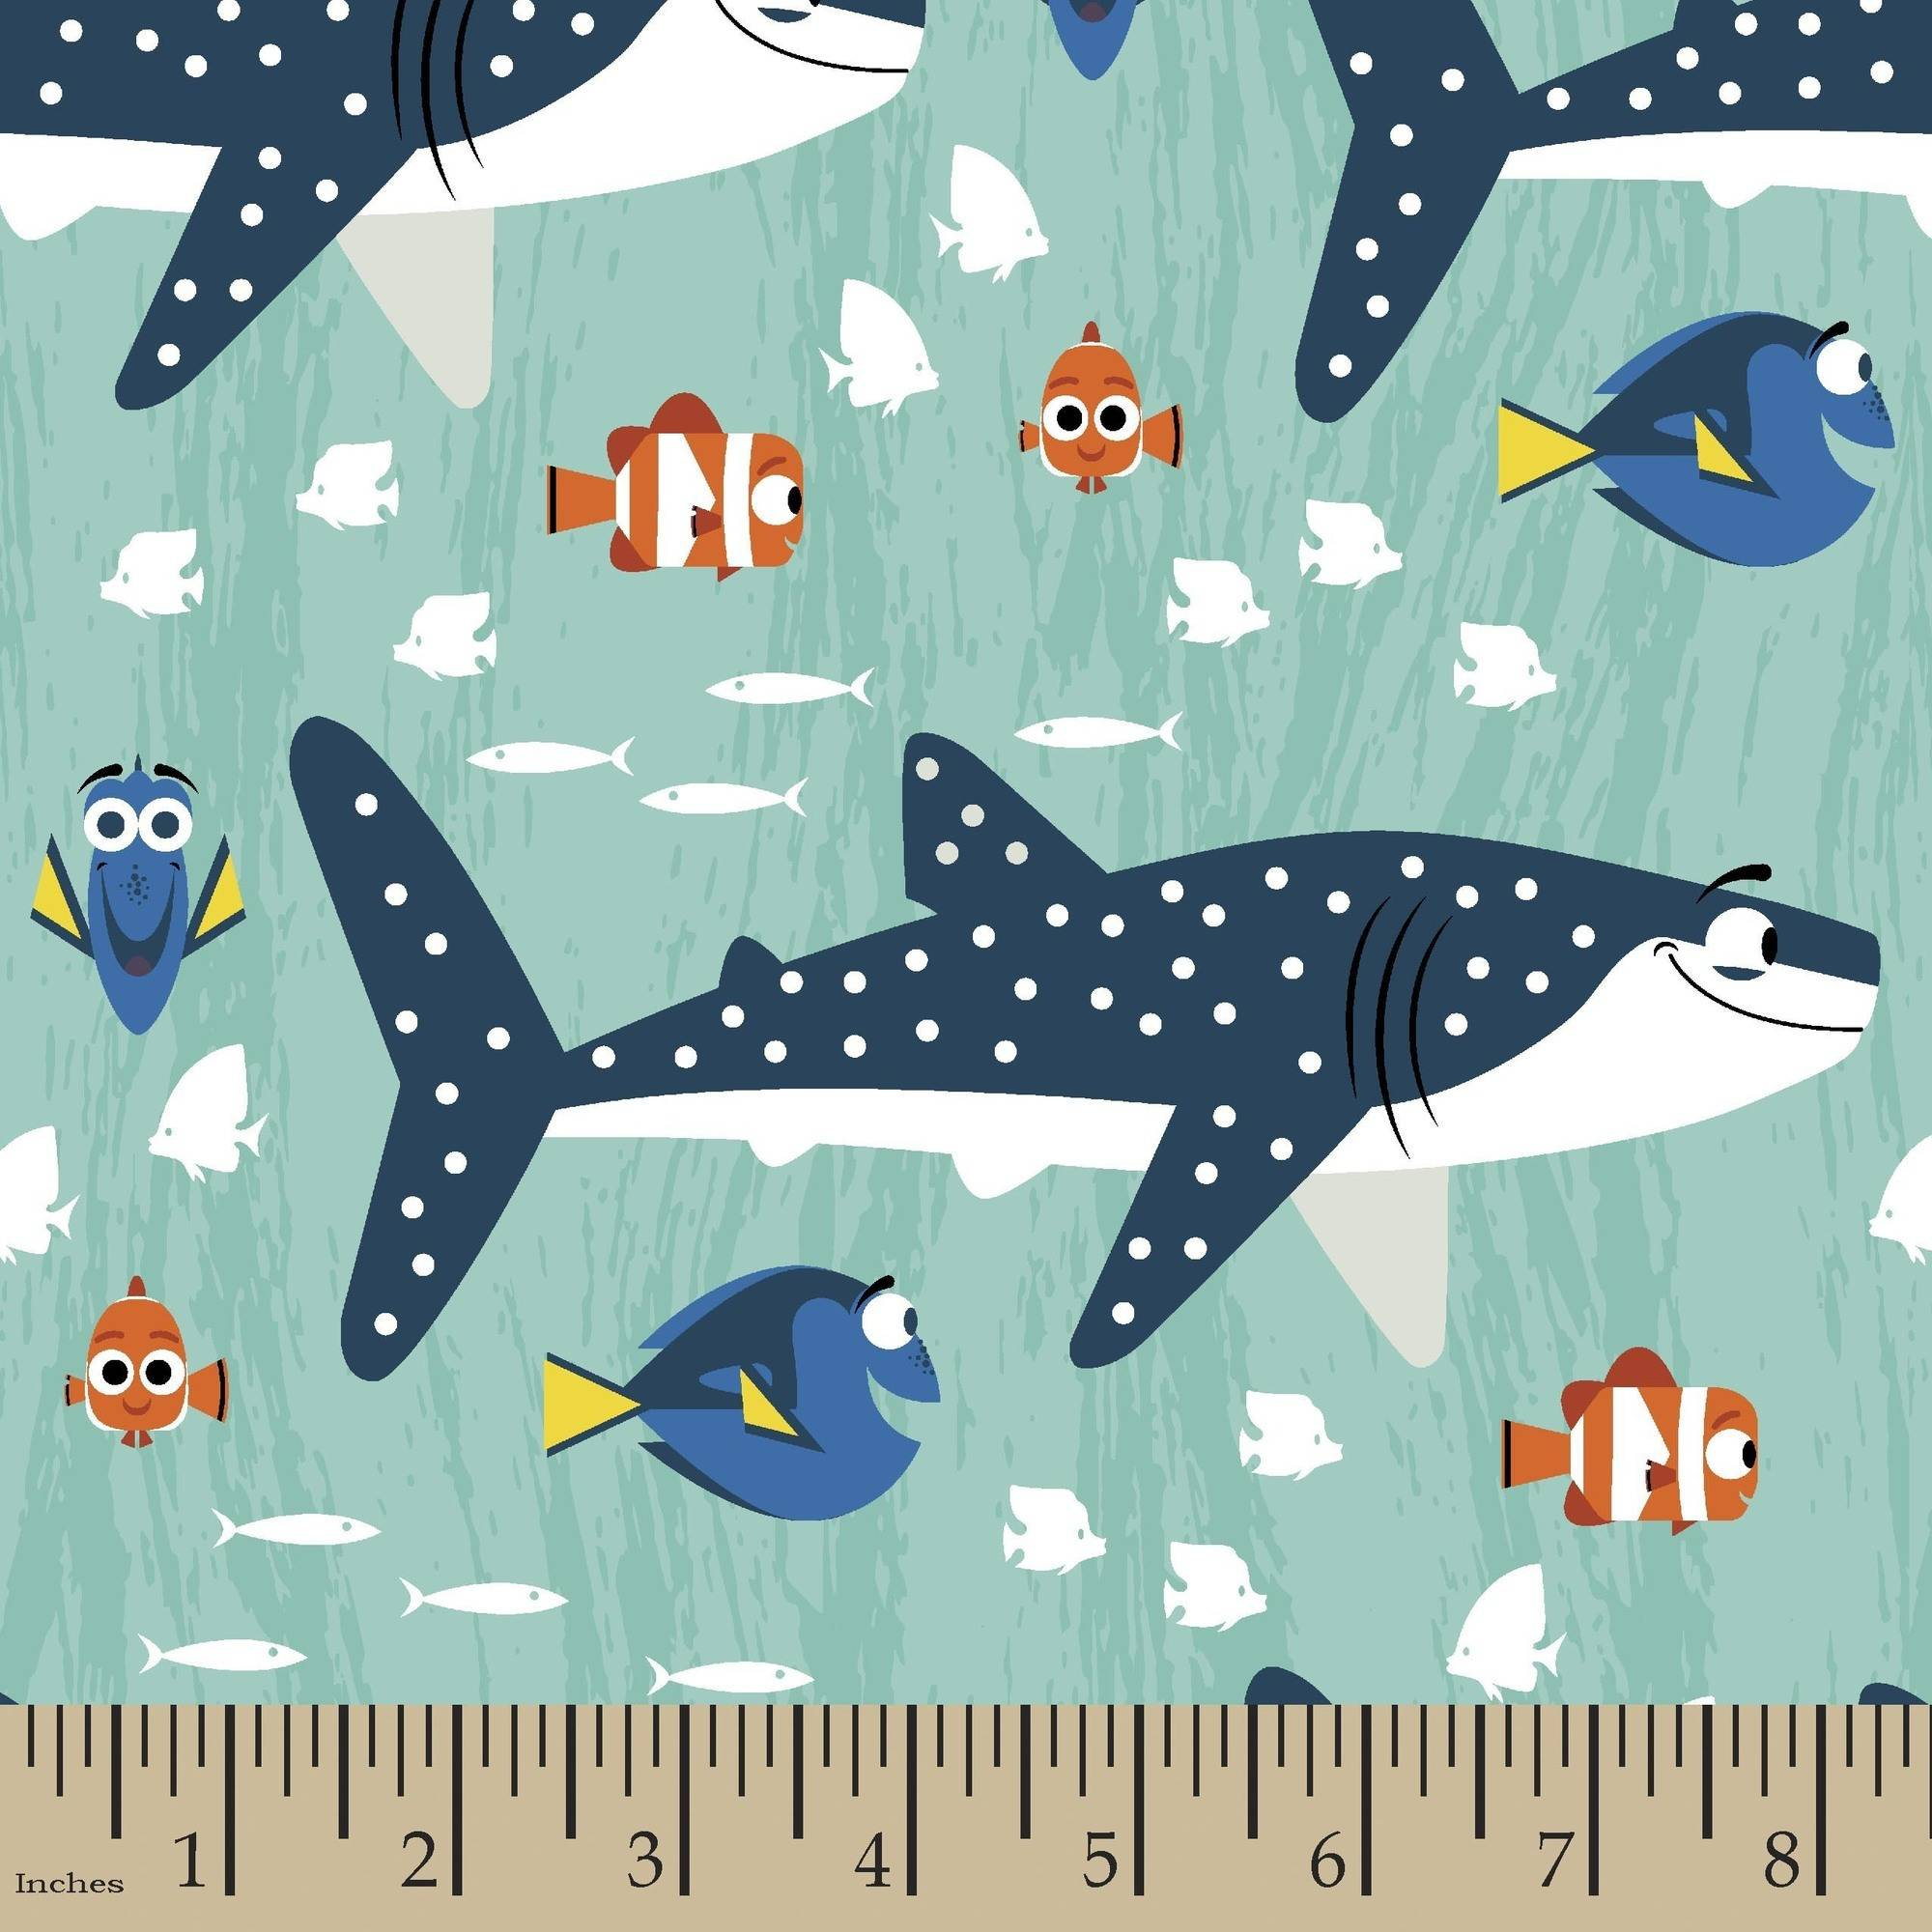 Disney Finding Dory Finding Dory Shark and Nemo Boy 43/44 Fabric by the Yard